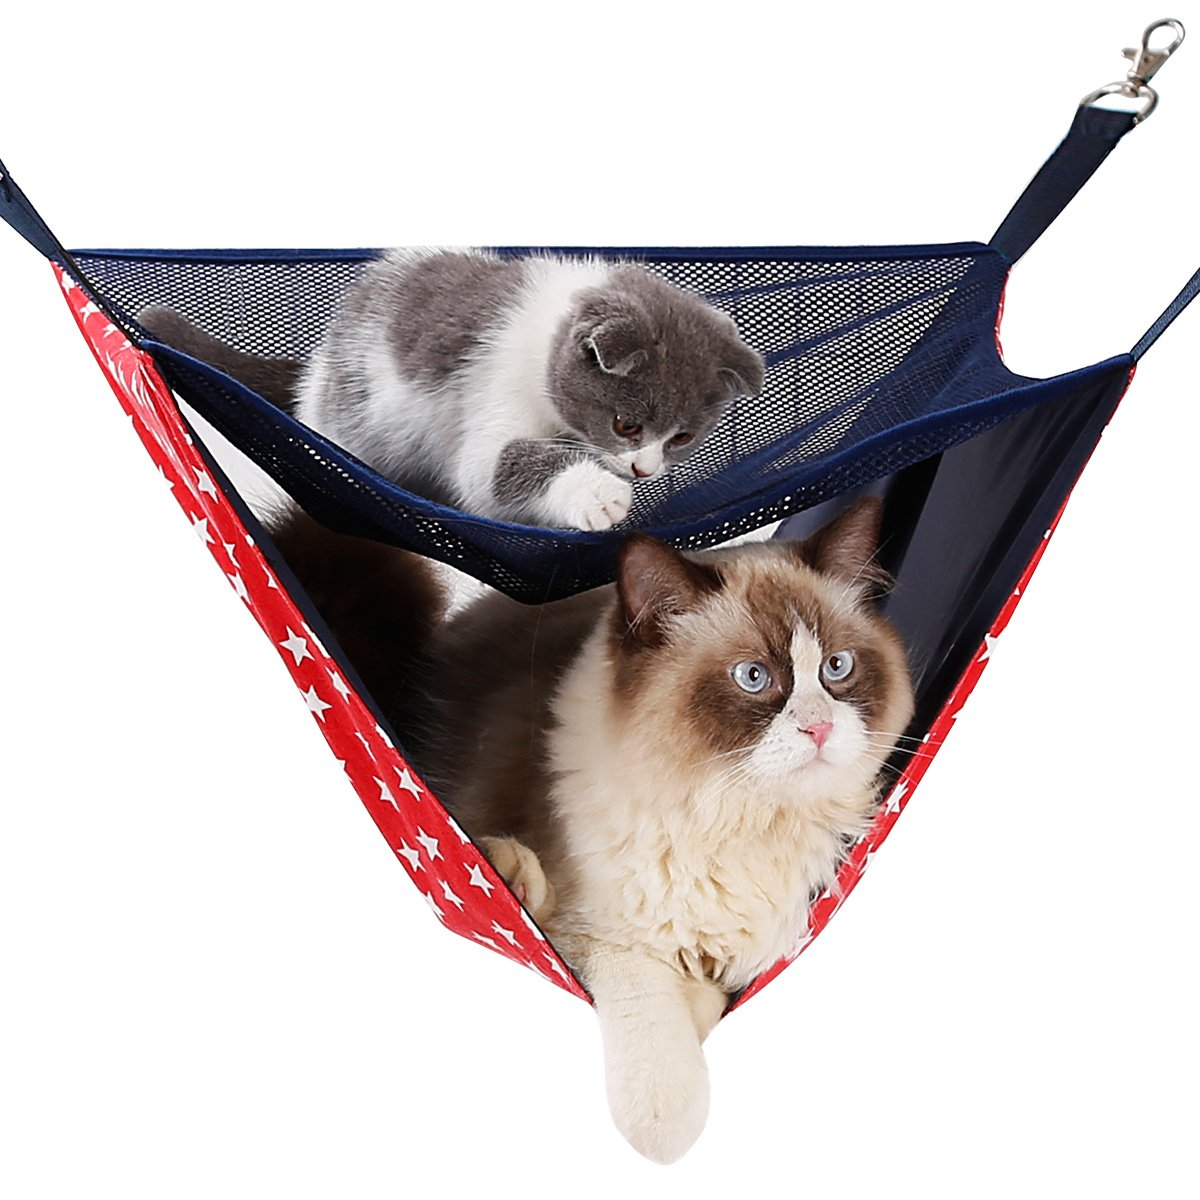 Red Dora Bridal Cat Hammocks Bed Soft Sleepy Pad, Small Pet Hammock for Kitten, Ferret,Bunny, Rabbit, Rat Hammock Comfortable Pet Hanging Bed Double Layers Easy to Attach to a Cage, with Upgraded Version